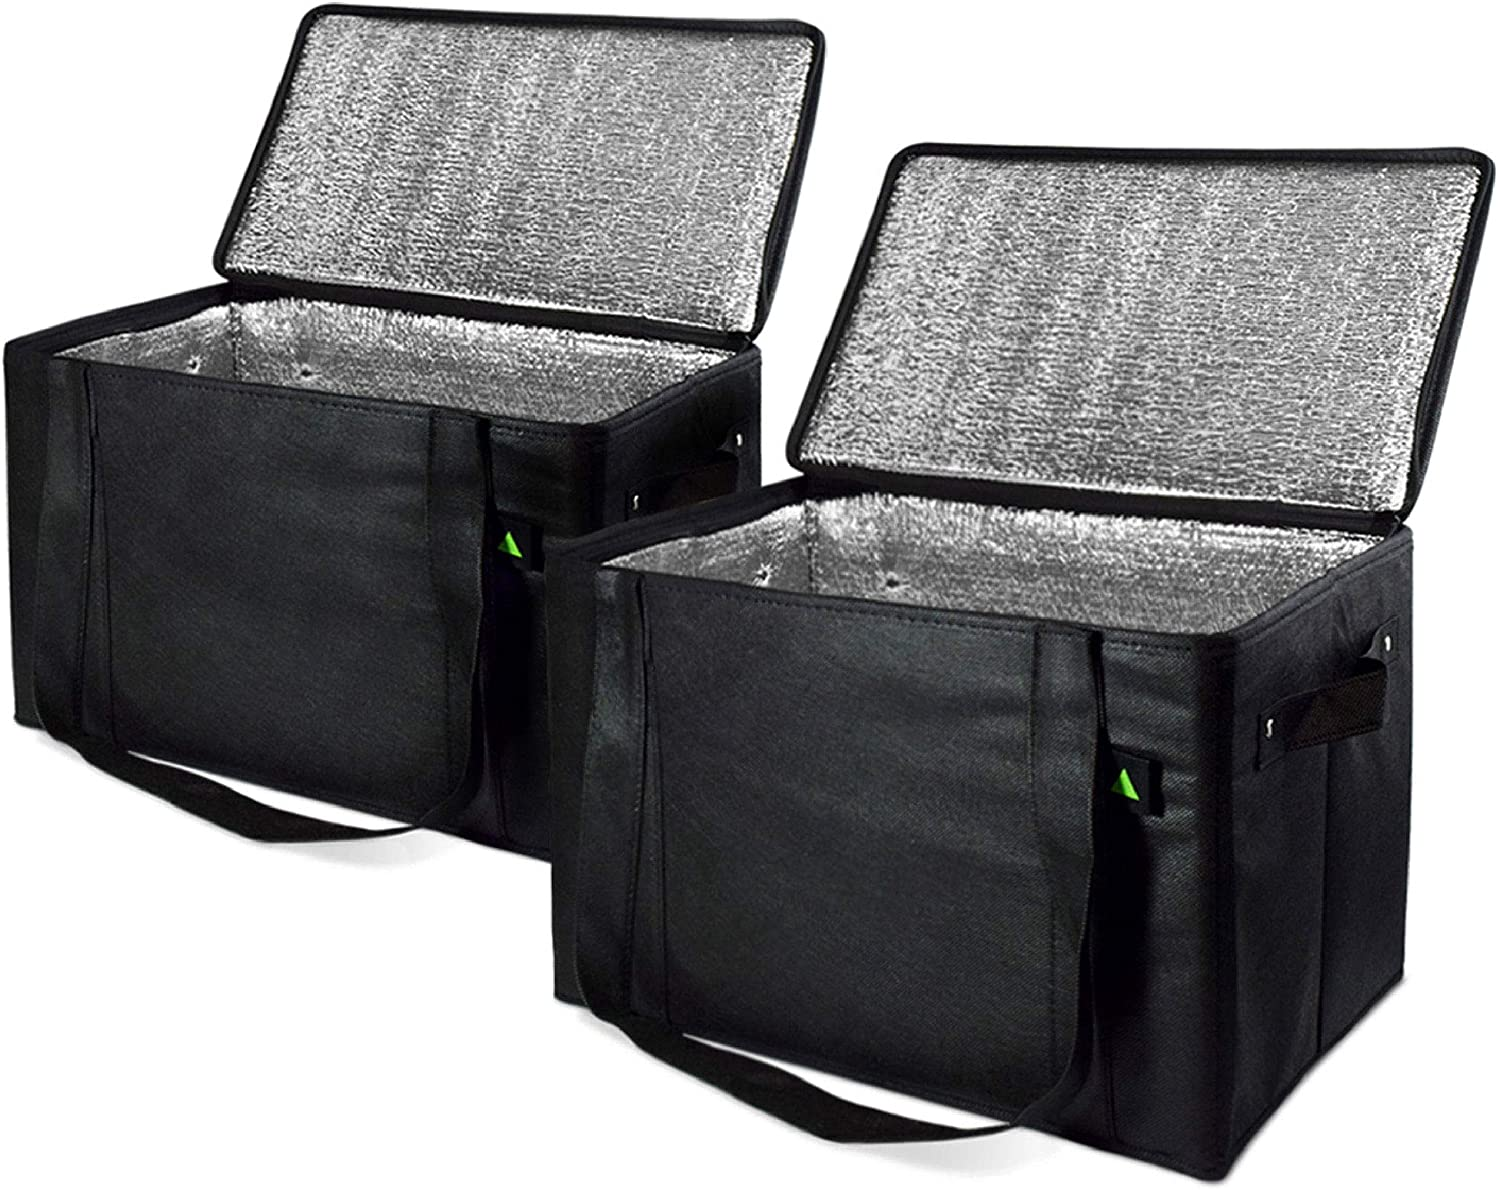 """Reusable Insulated Grocery Box Bags, Rigid & Collapsible With Handles And Zippered Top, Insulated Cooler Bags, Reusable Grocery Shopping Bags, Thermal Bags 2 Pcs. 14.5x10x10"""""""